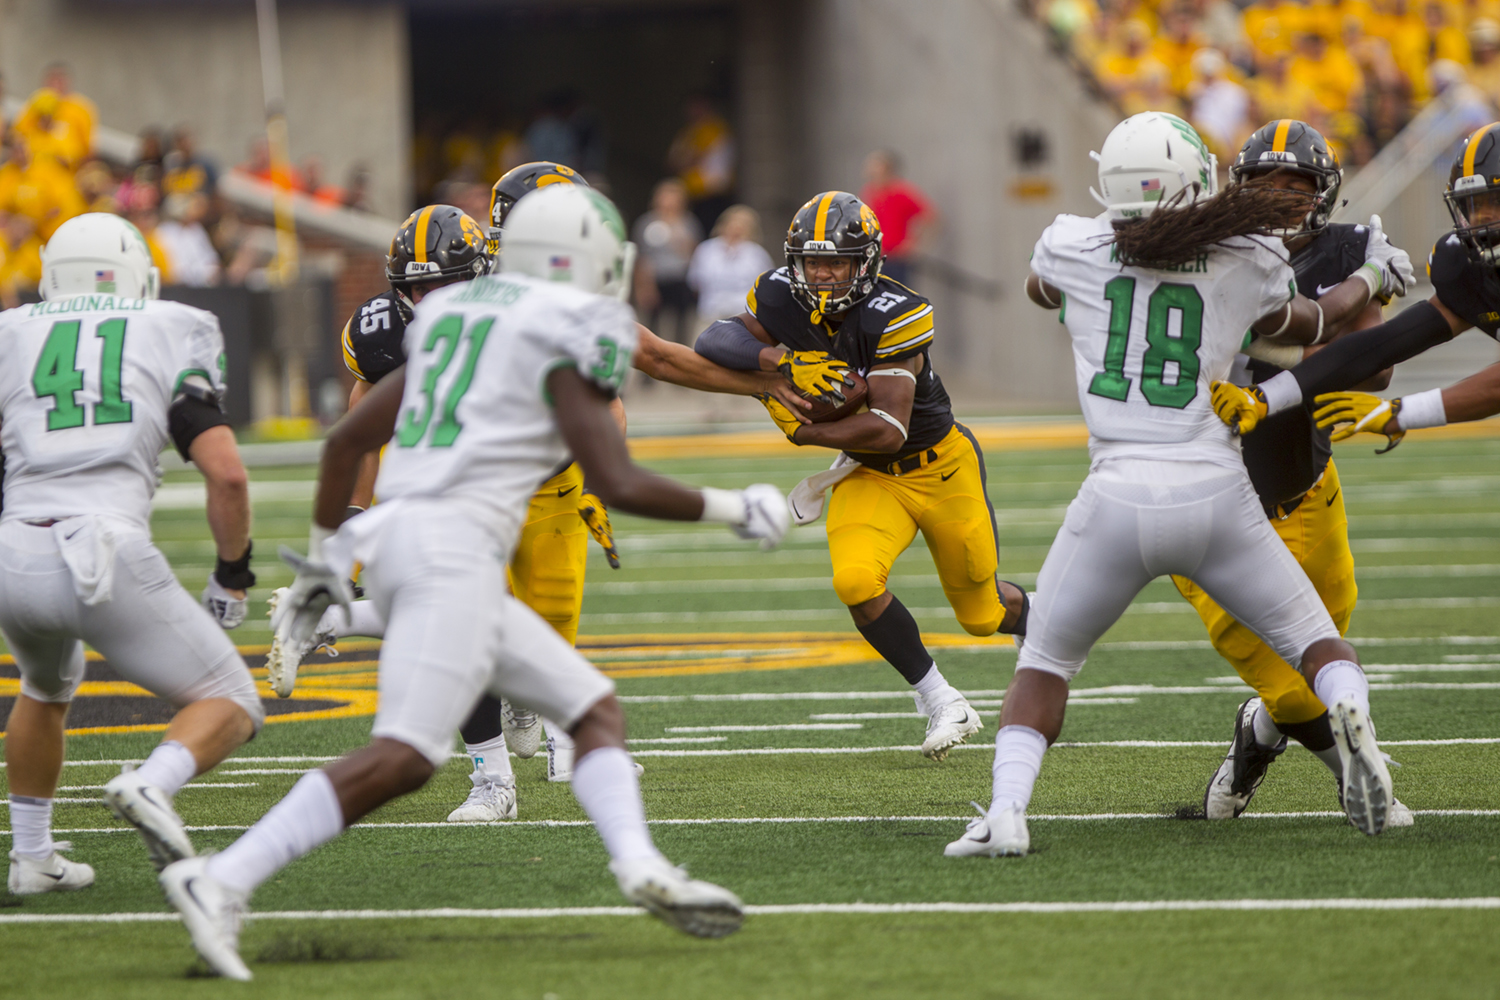 Iowa's Ivory Kelly-Martin takes the handoff during the game between Iowa and North Texas at Kinnick Stadium on Saturday Sept. 16, 2017. Iowa won 31-14. (Nick Rohlman/The Daily Iowan)